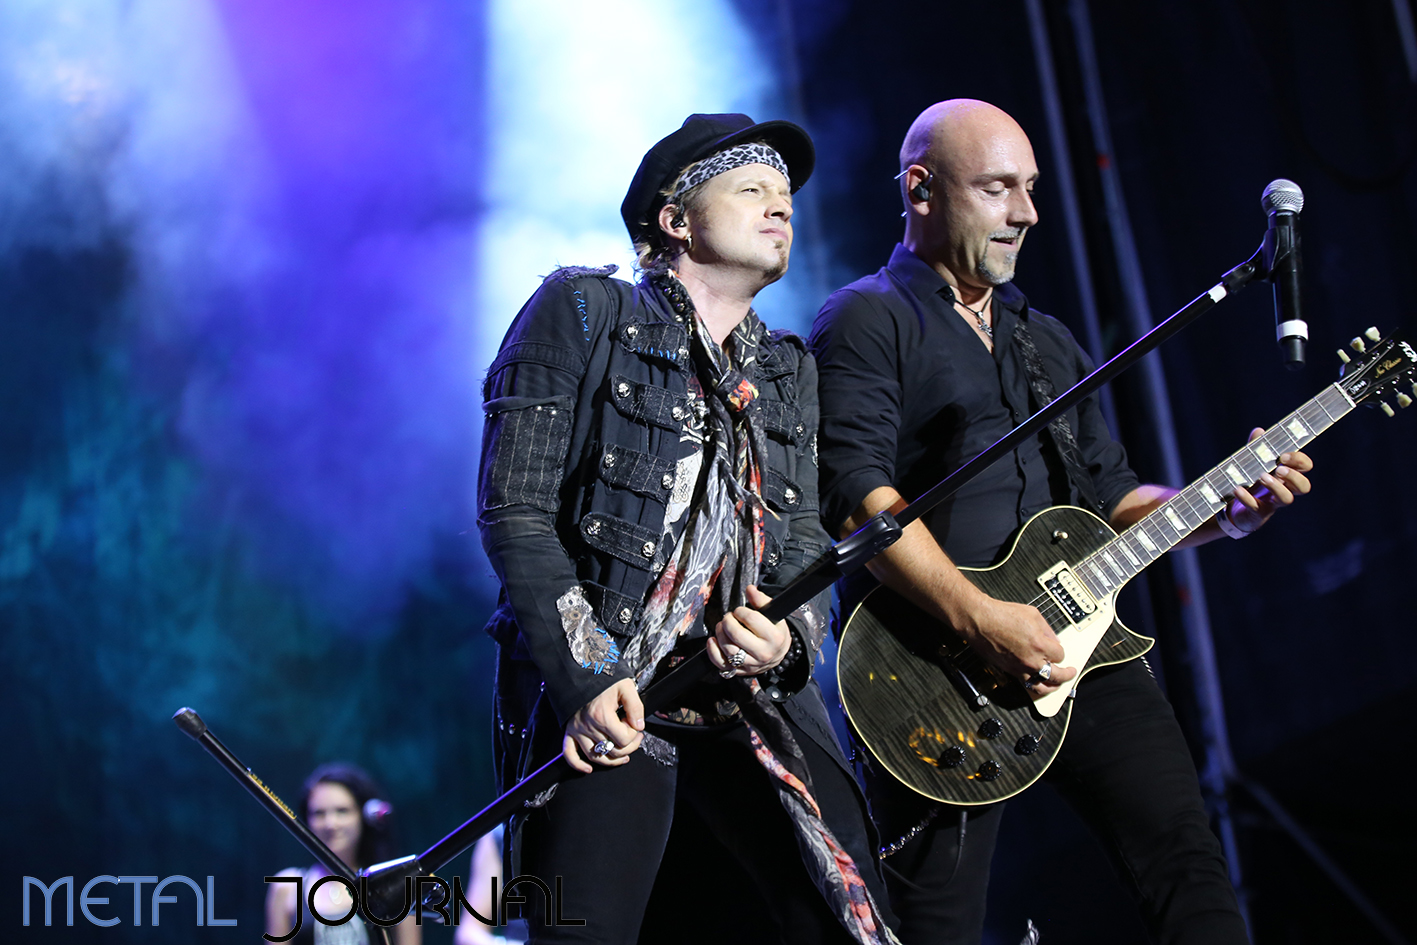 avantasia- leyendas del rock 2019 metal journal pic 12